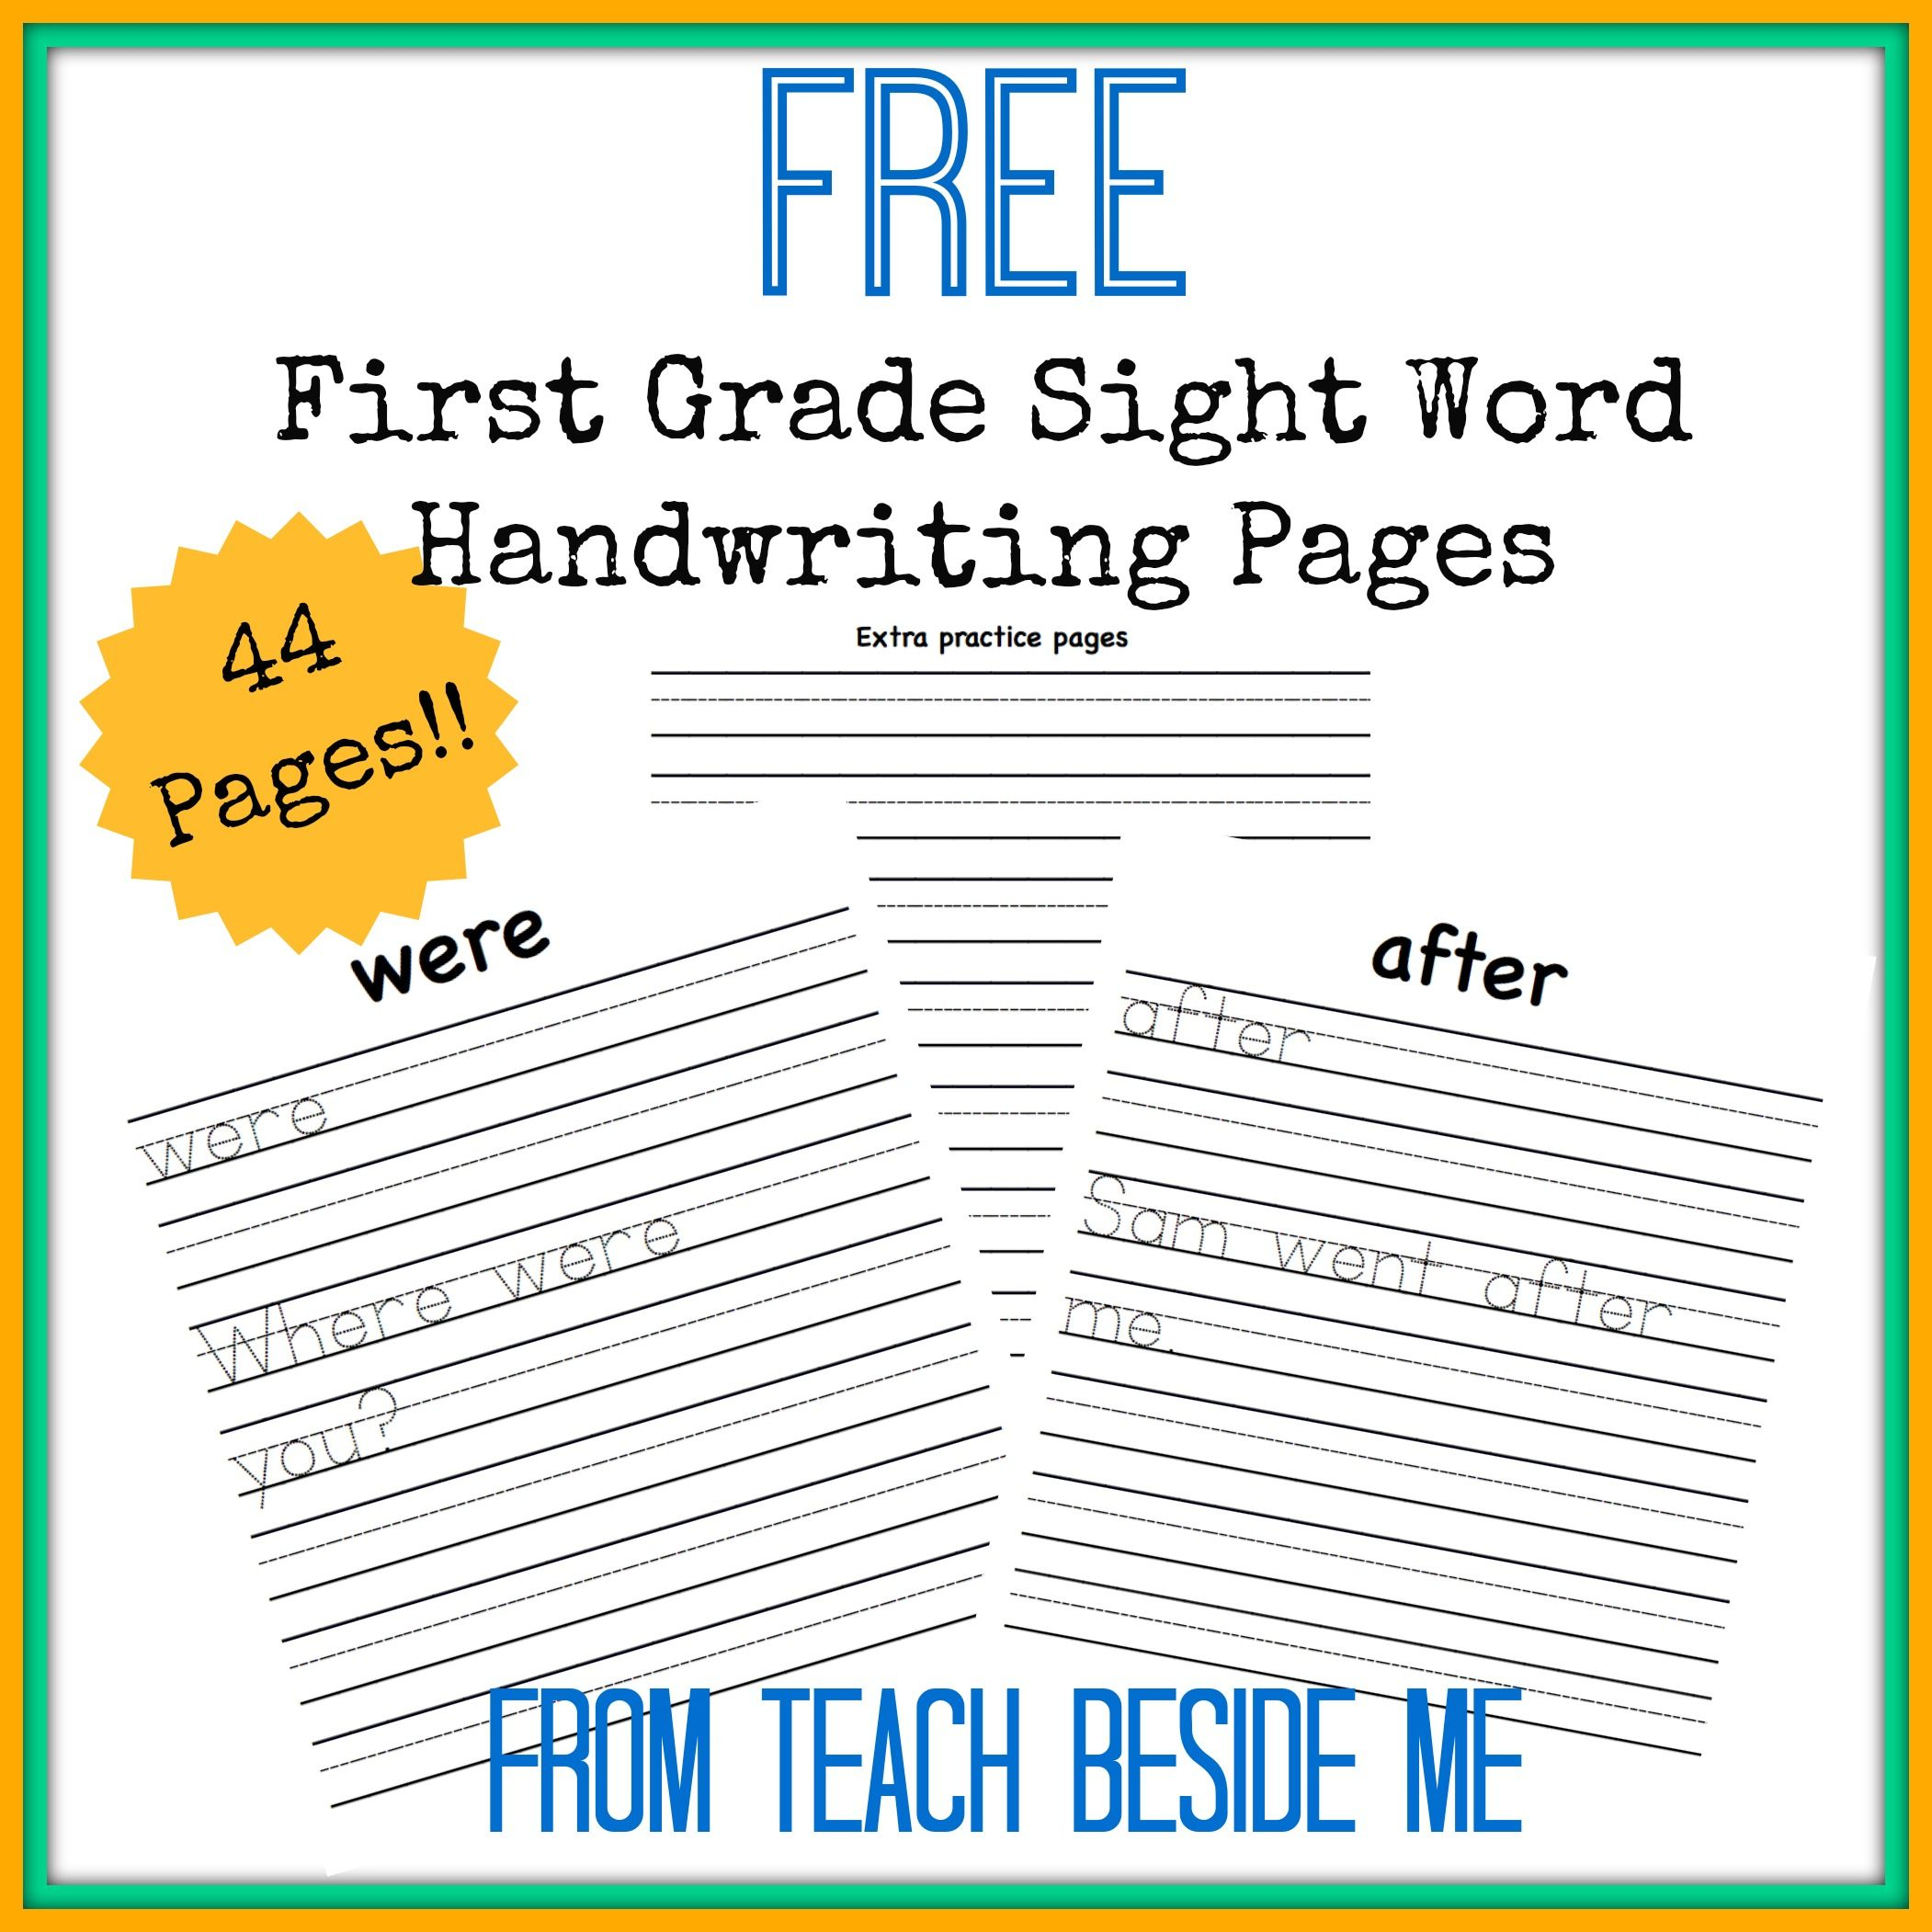 First Grade Sight Word Handwriting Pages